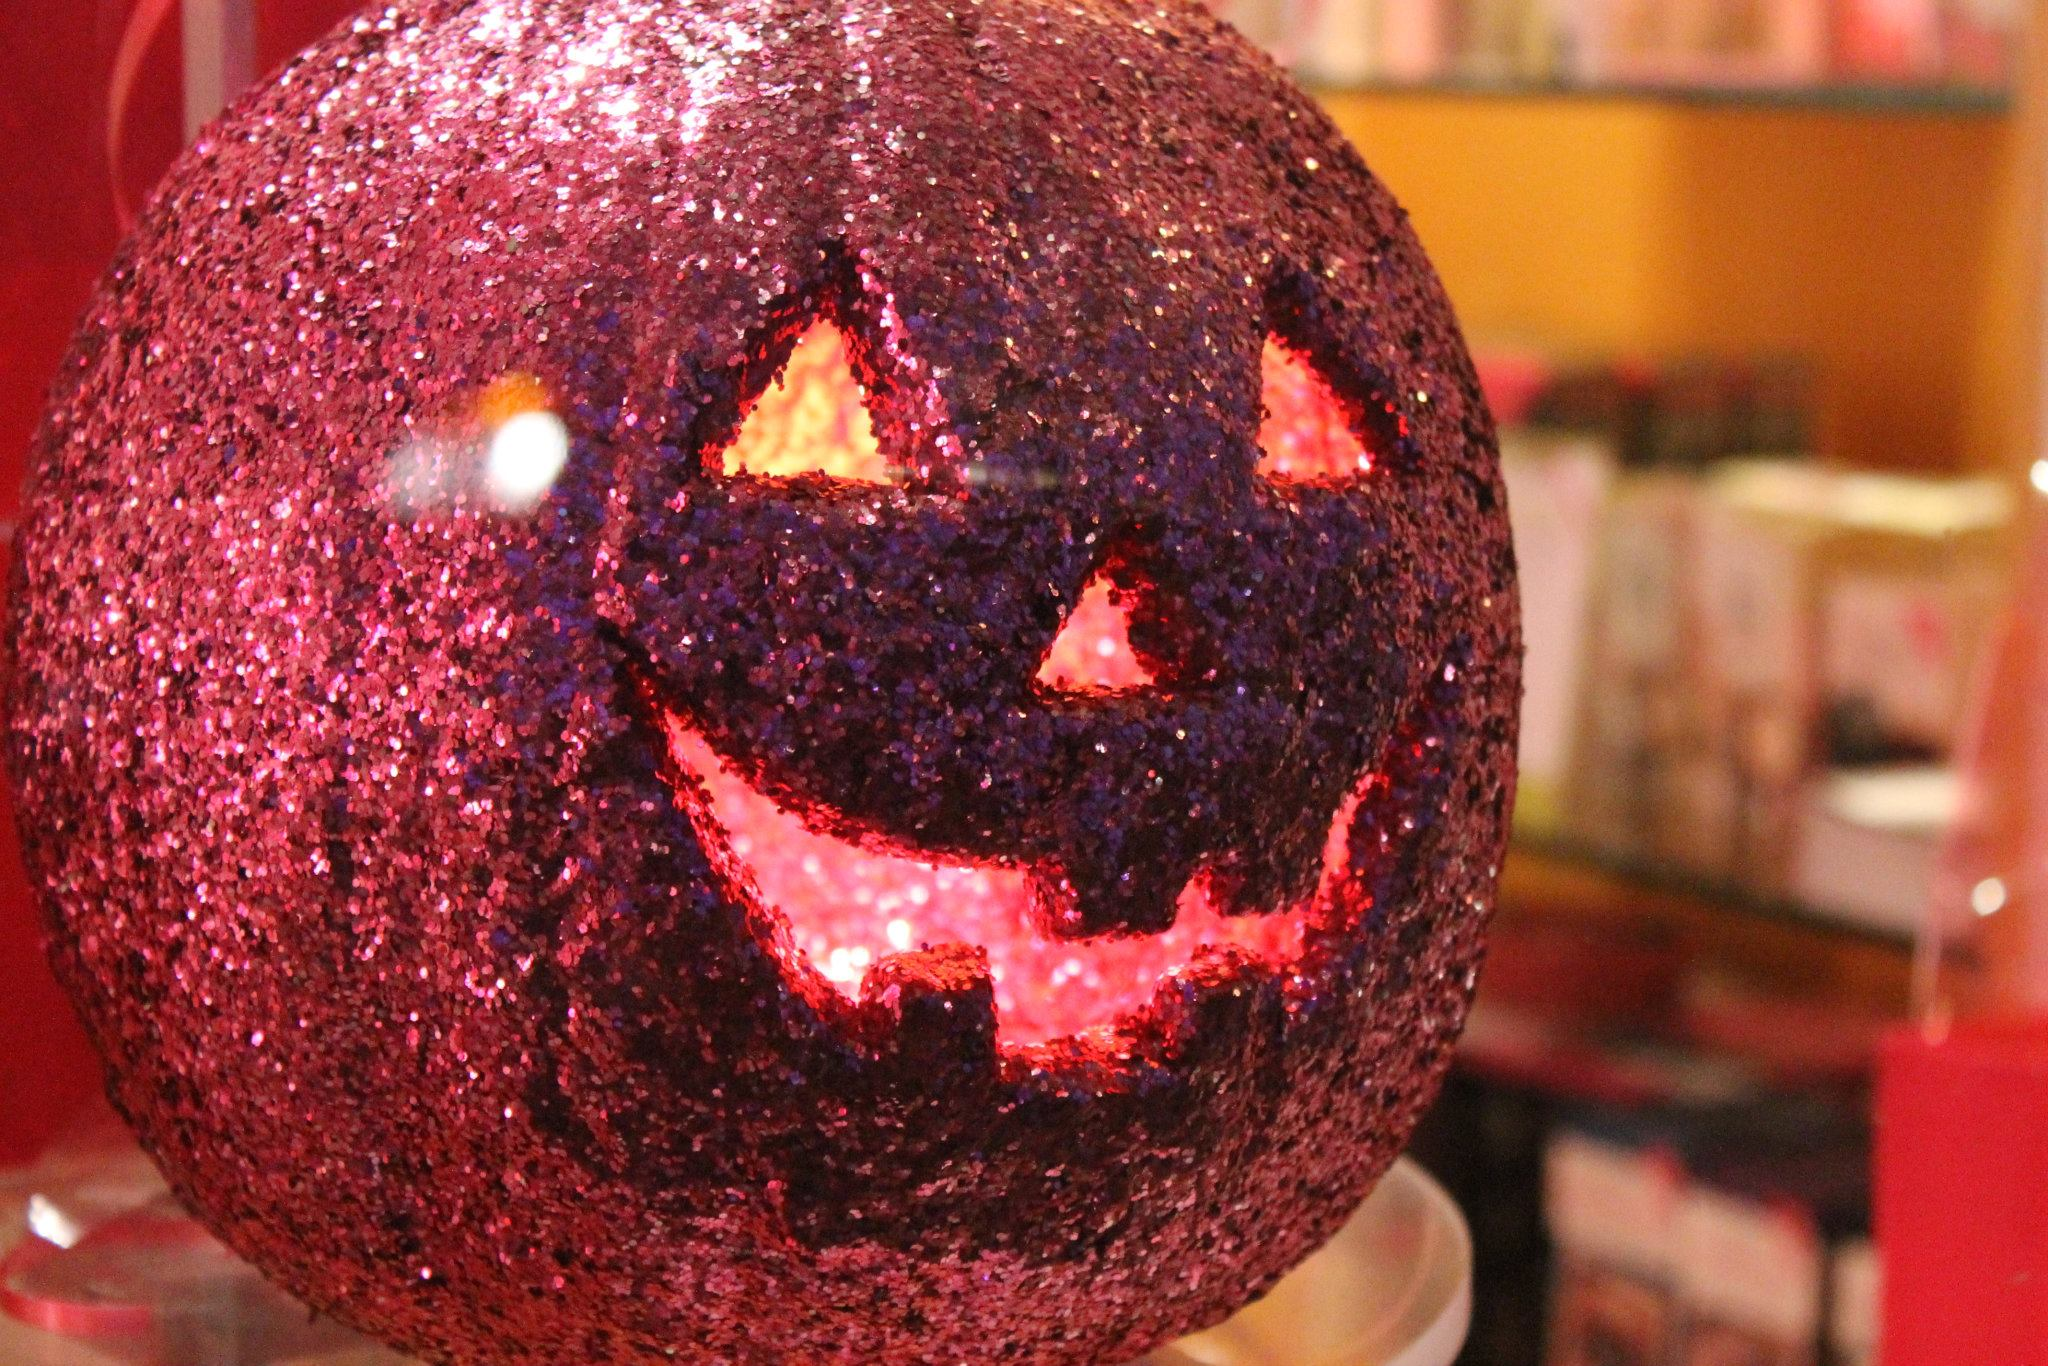 5 Short Safety Tips for Halloween